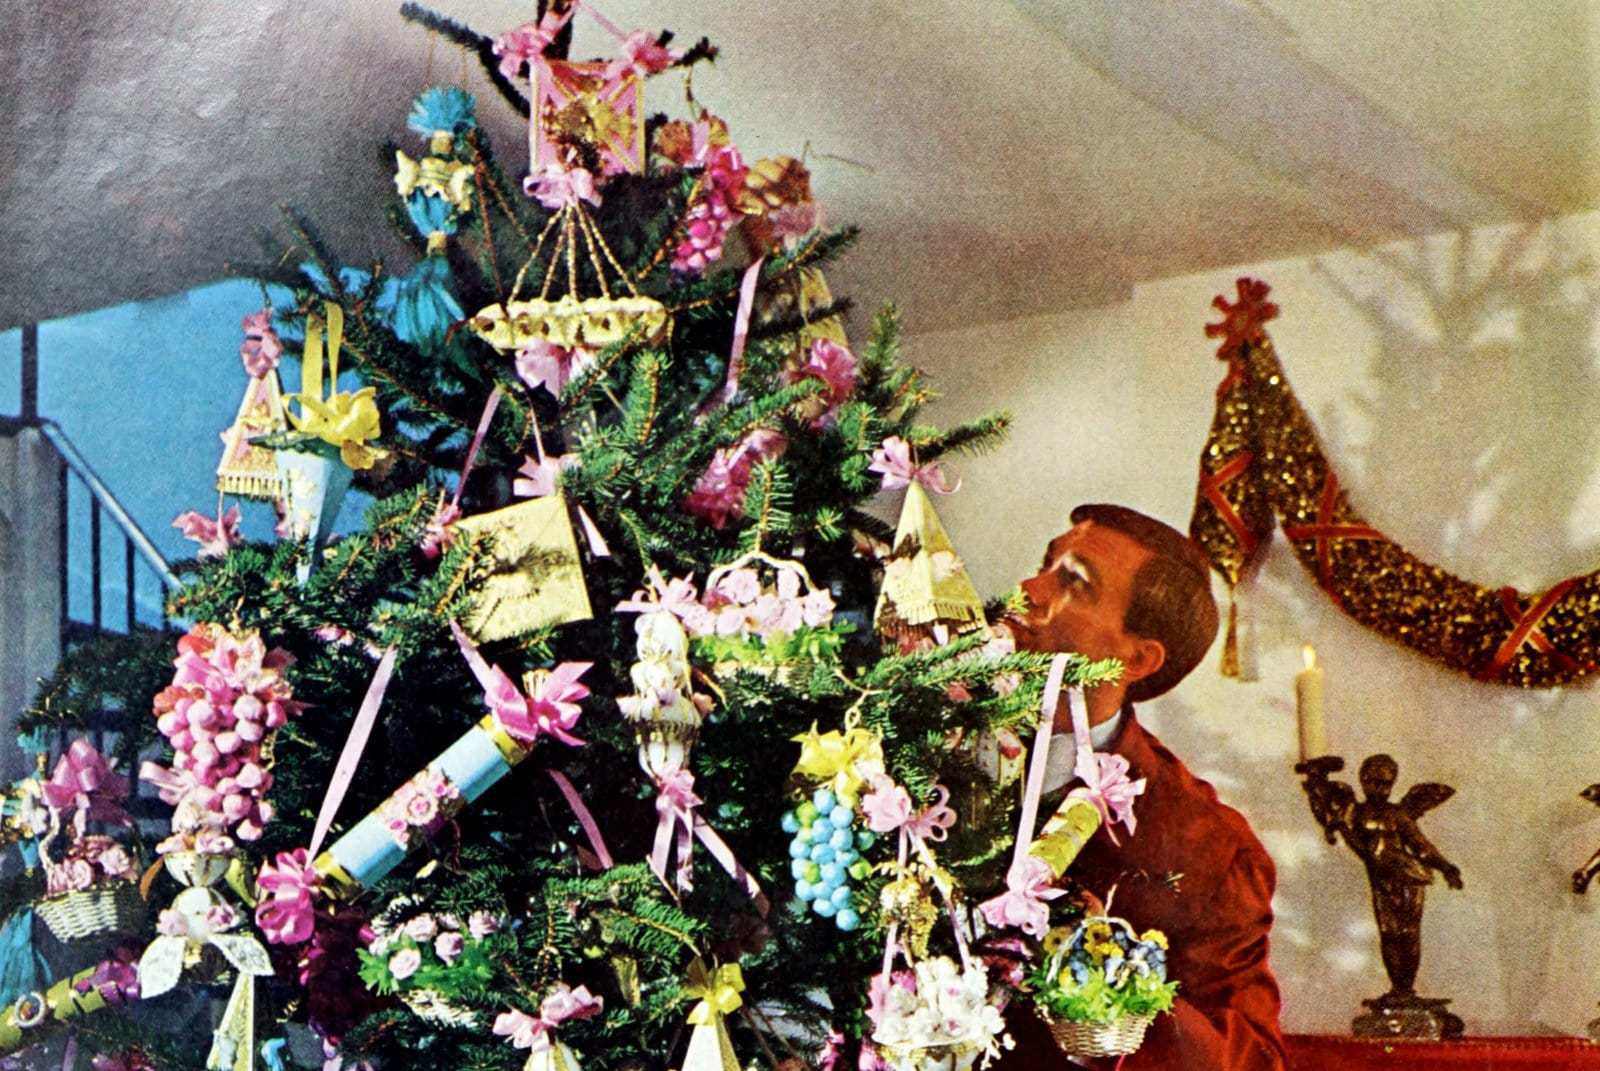 How to make Christmas trimmings and decor with real 60s flair